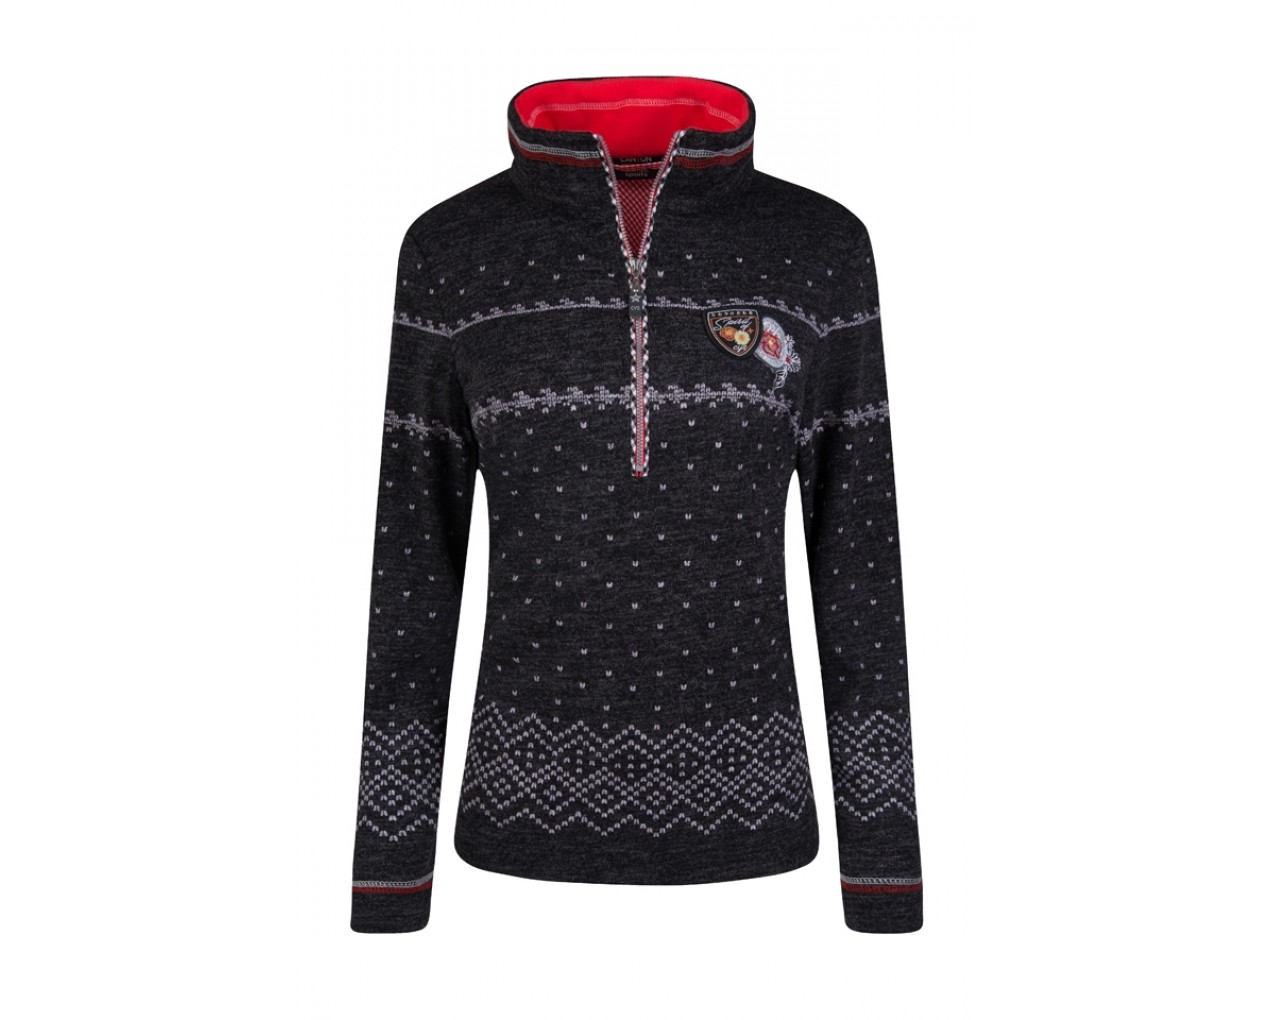 sehen hell im Glanz 2019 professionell Ladies Shirt - Ski - Sportbekleidung | Canyon Women Sports